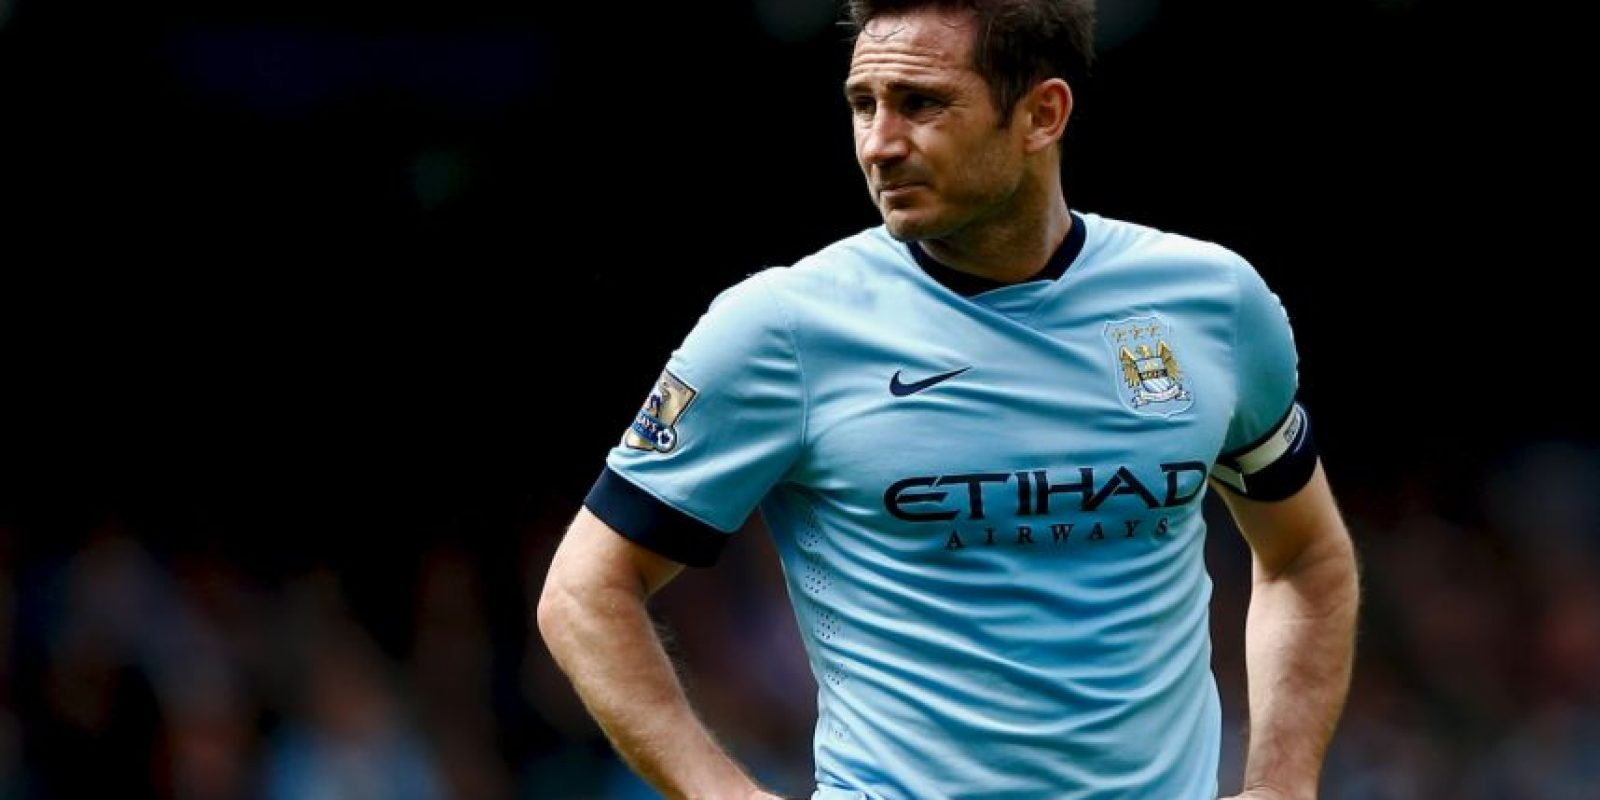 5. Frank Lampard Foto: Getty Images